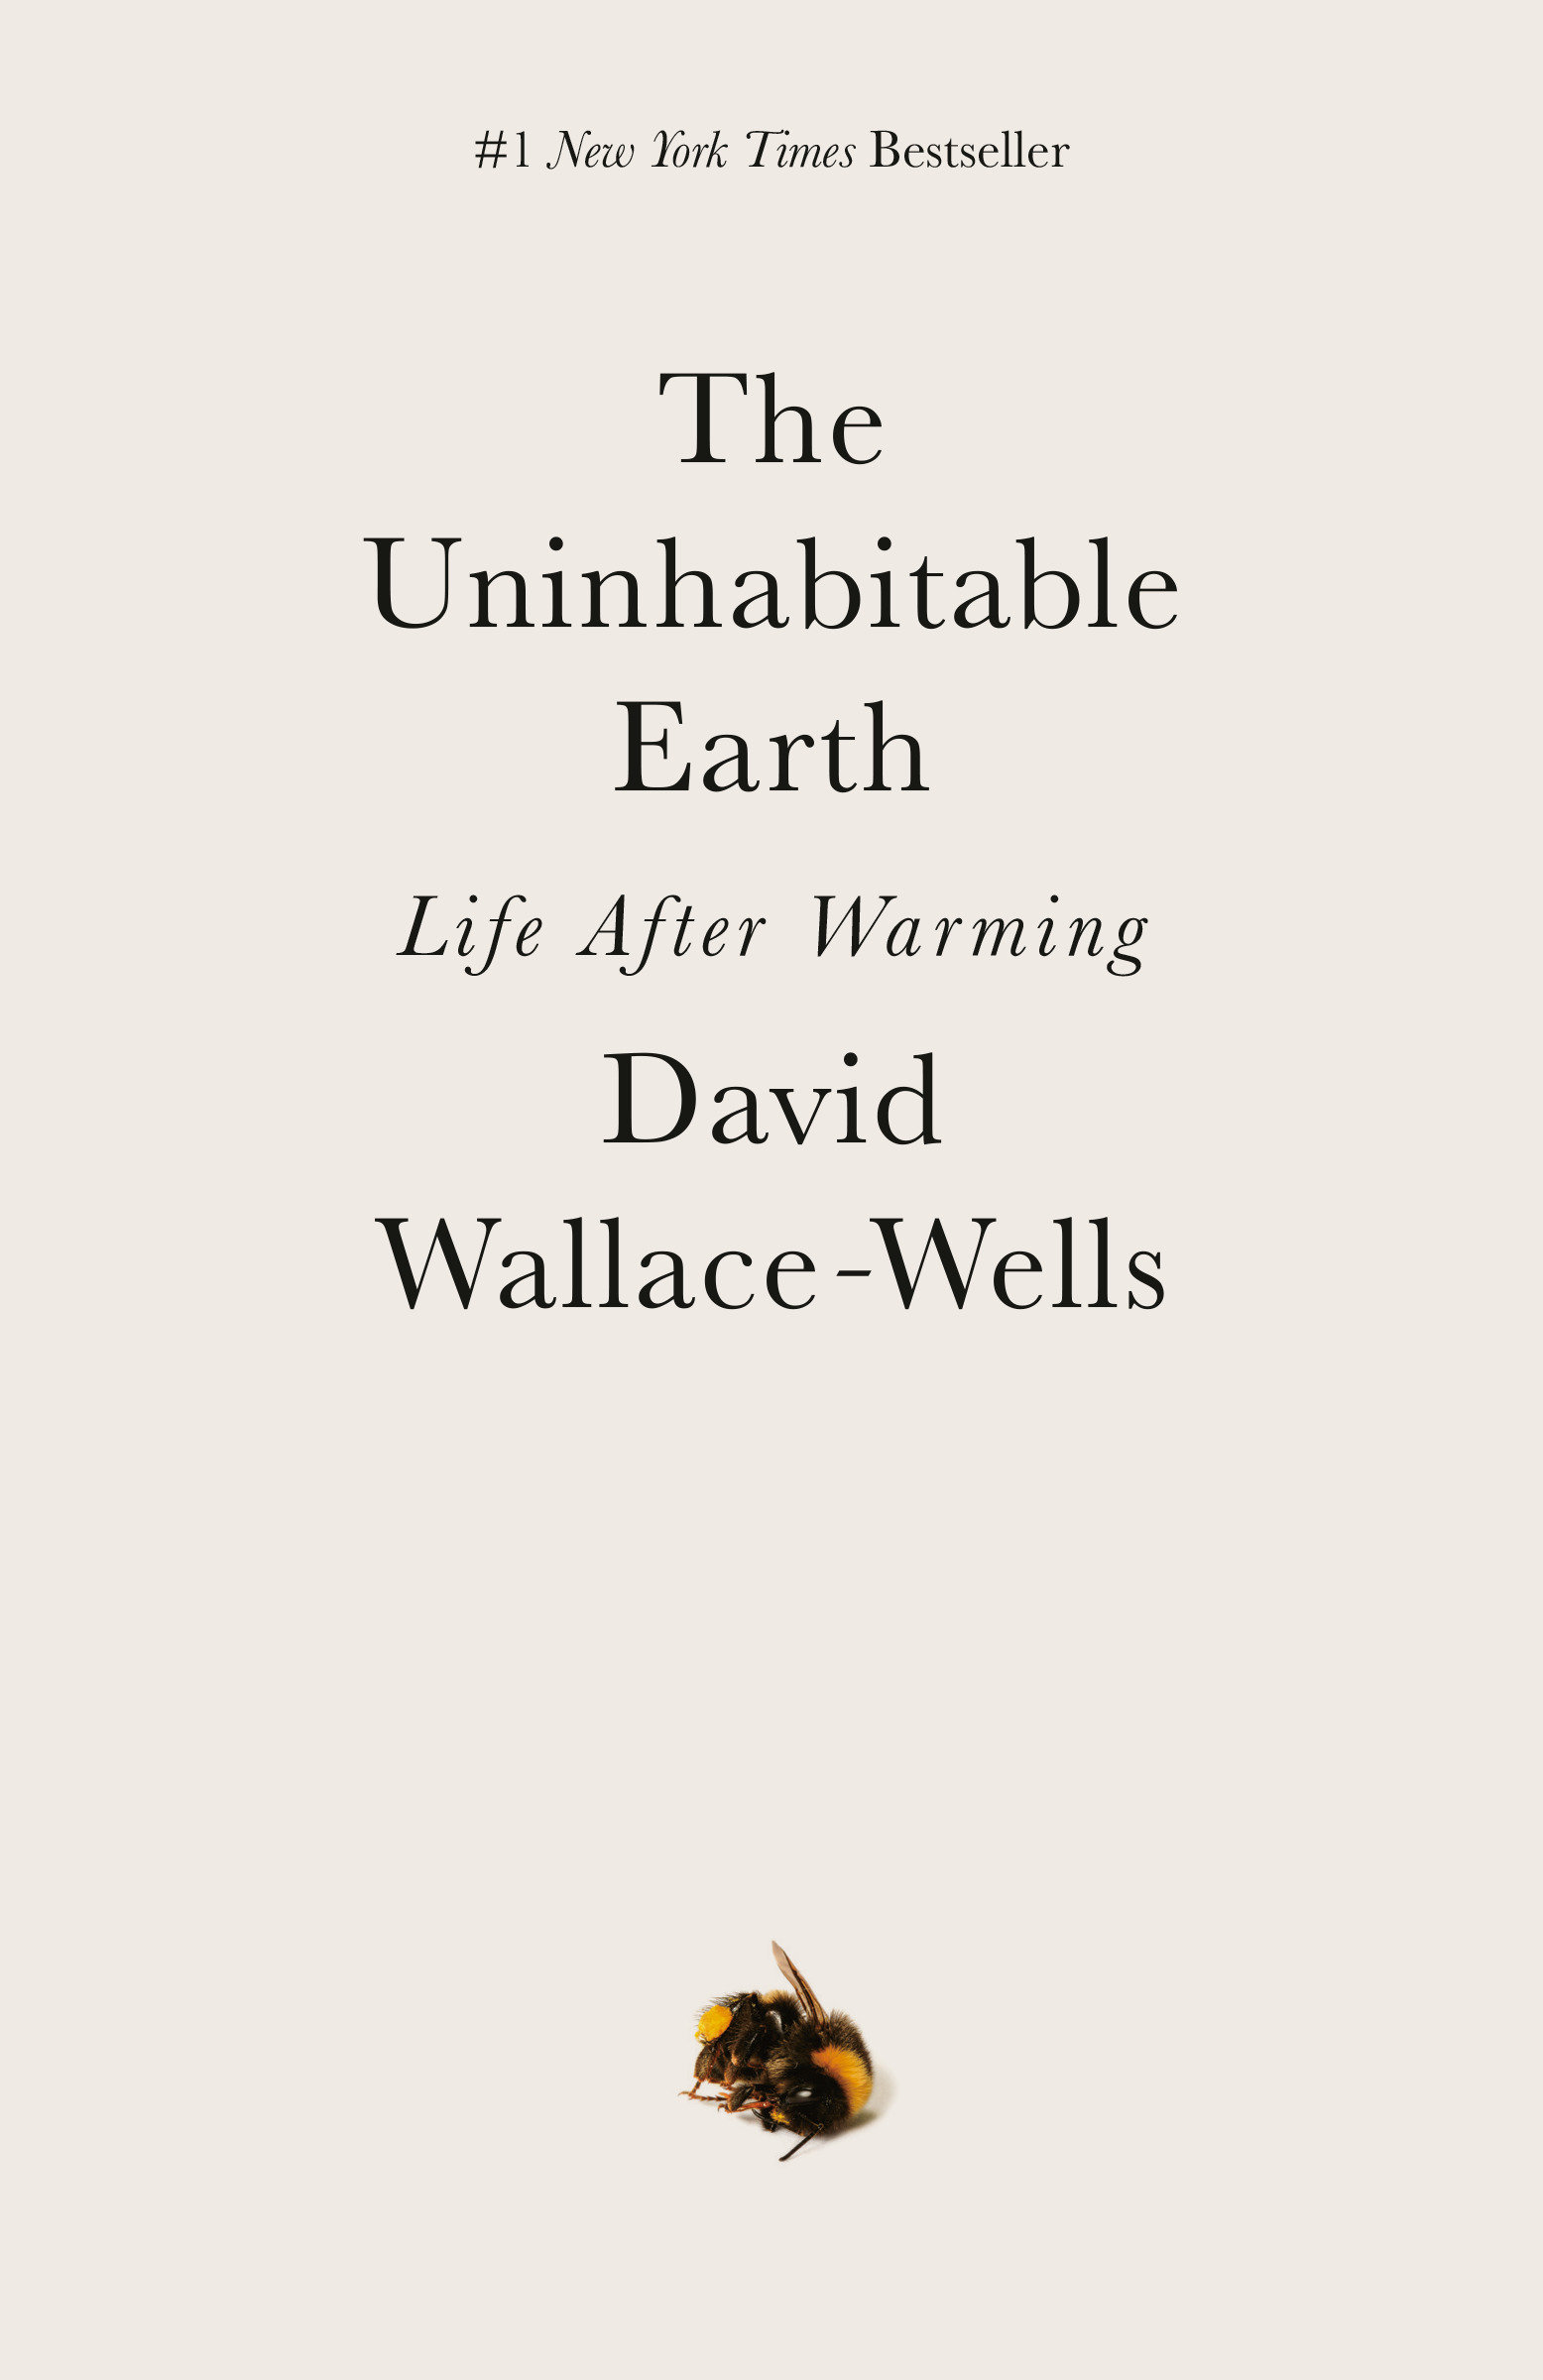 The Uninhabitable Earth Life After Warming